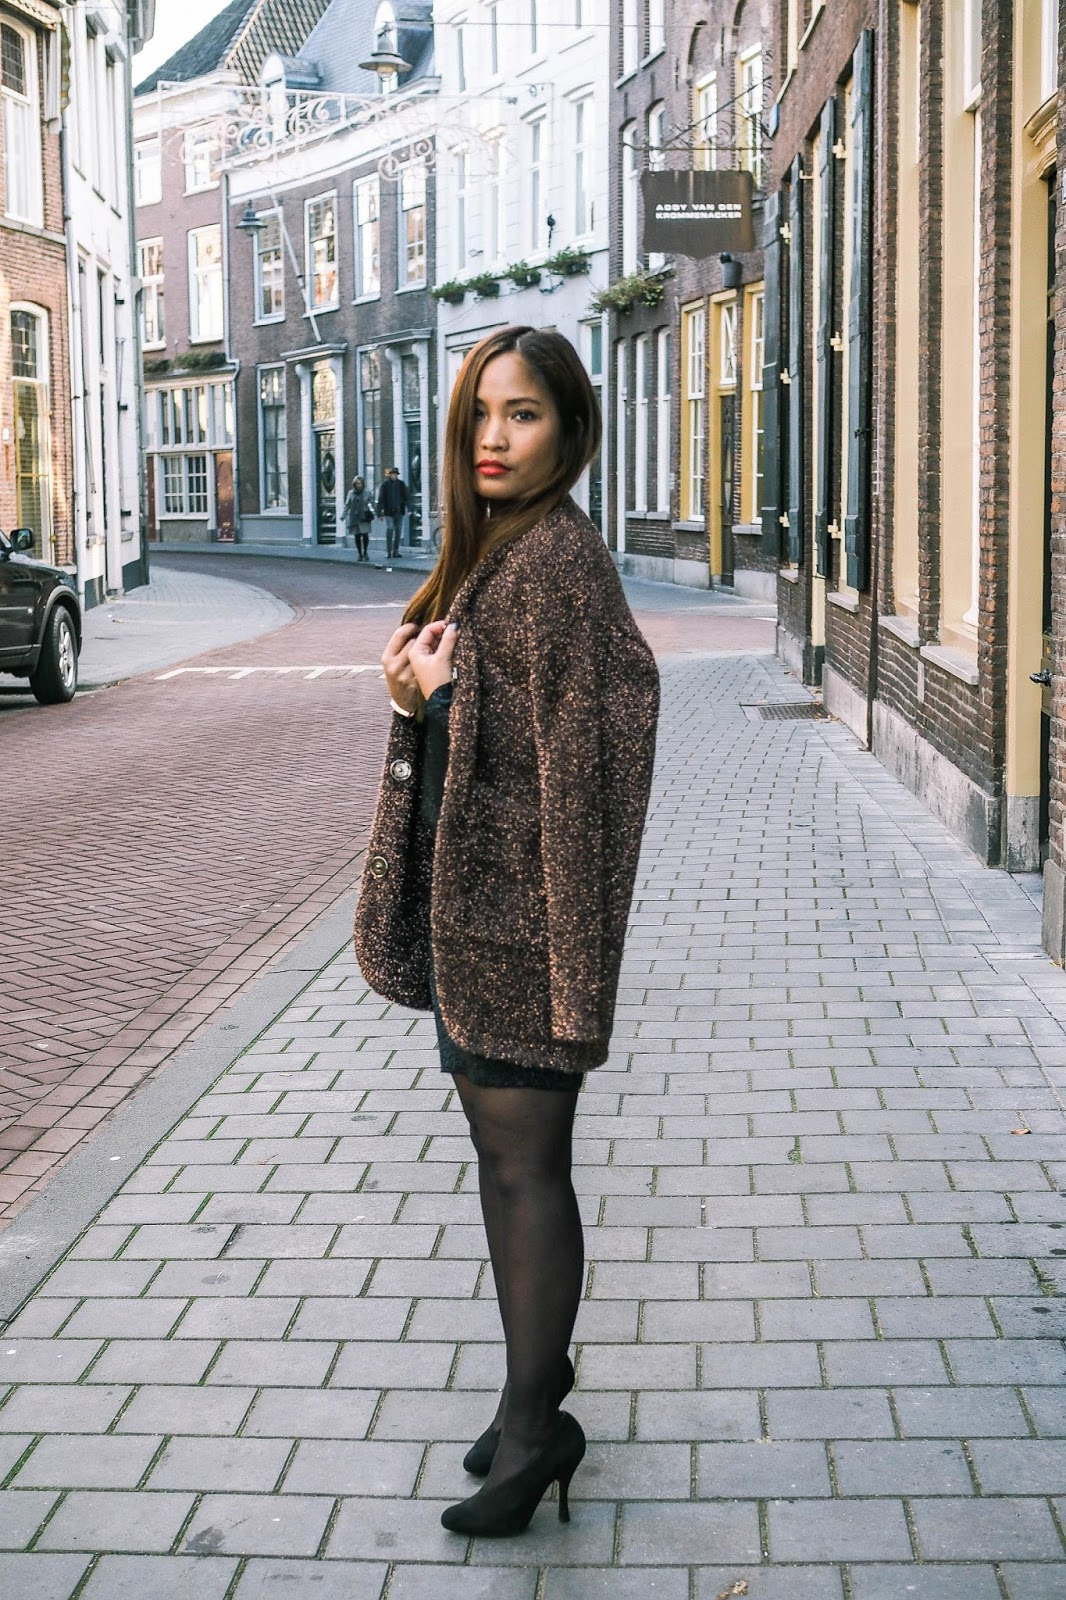 84dfd748f Winter style sandraespina.com - Fashionmylegs   The tights and ...